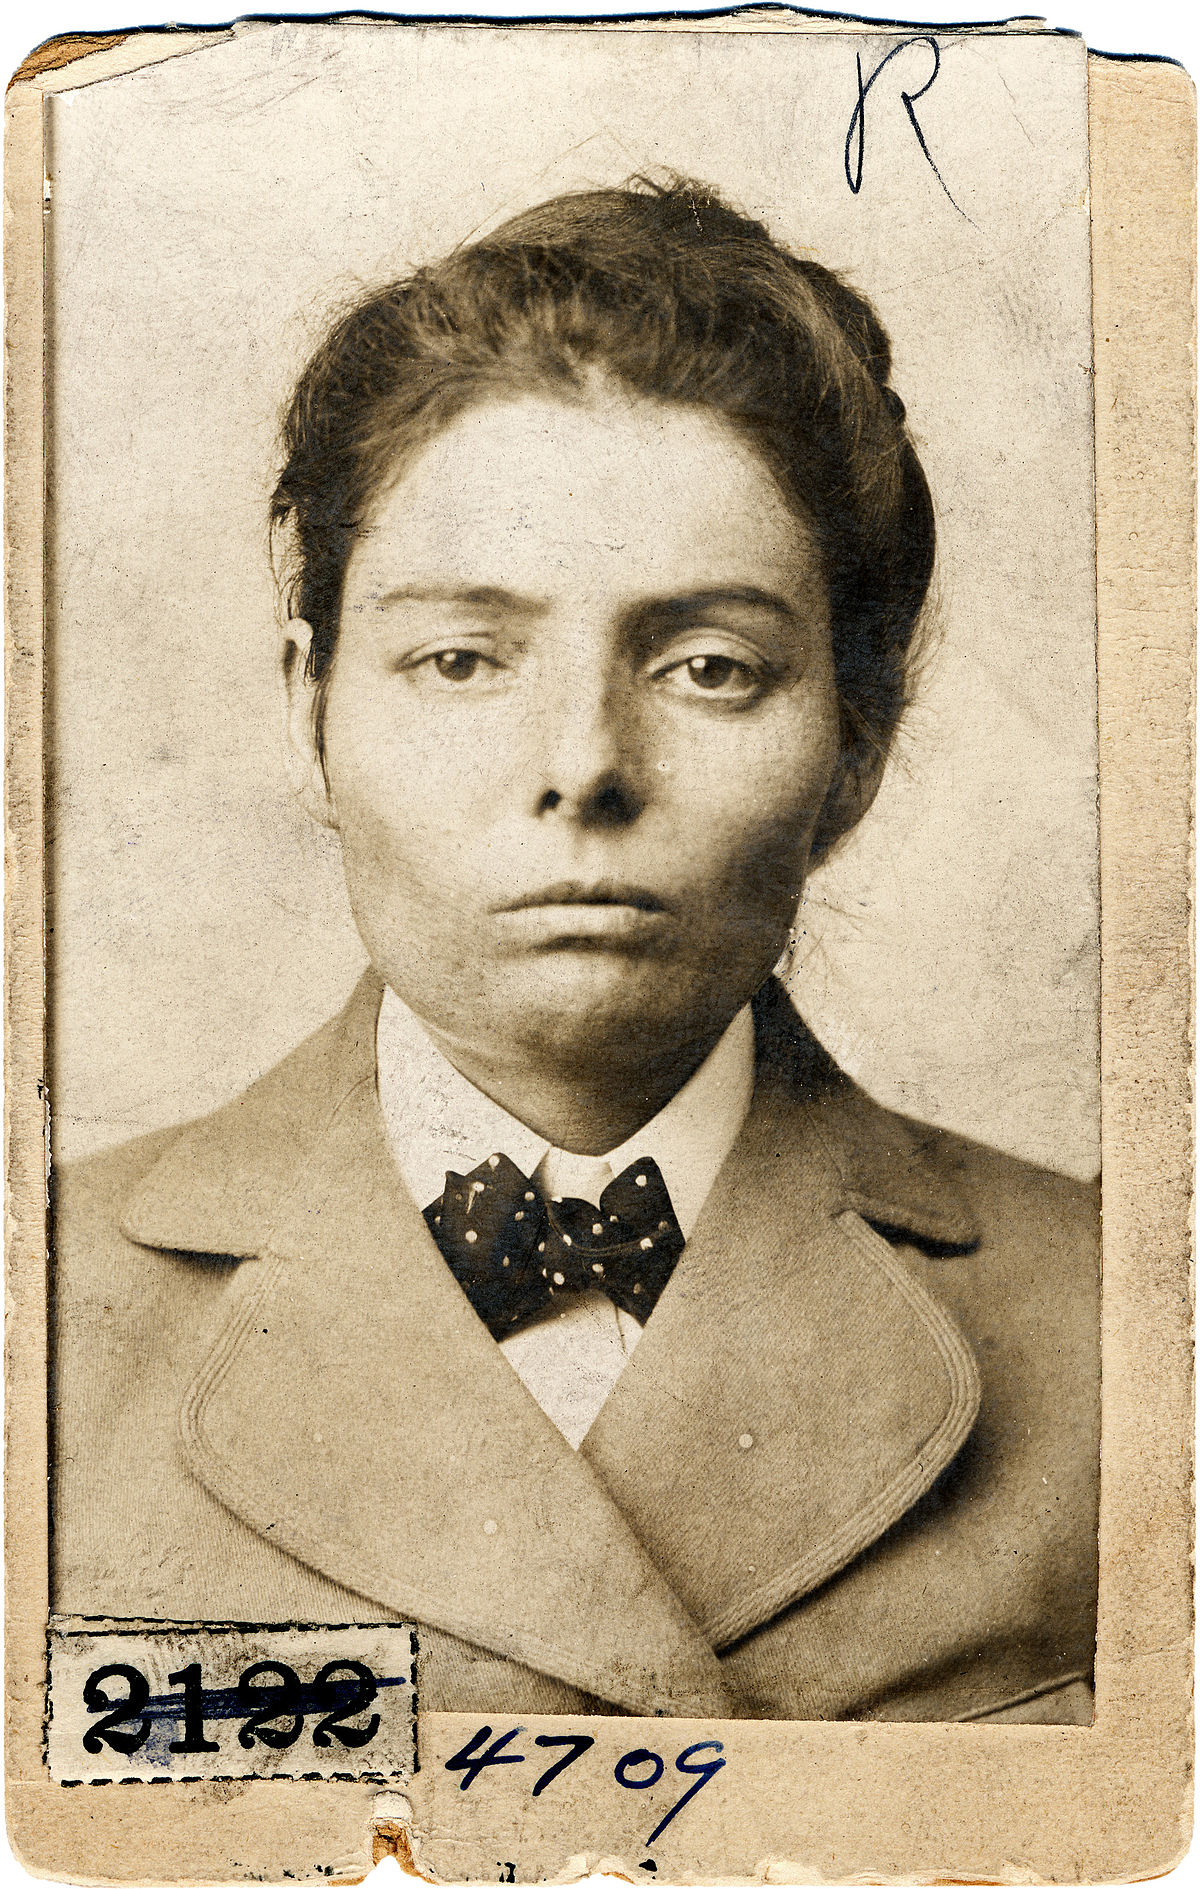 1200px-Laura_Bullion_of_the_Wild_Bunch_gang,_Pinkerton's_mug_shot,_1893.jpg